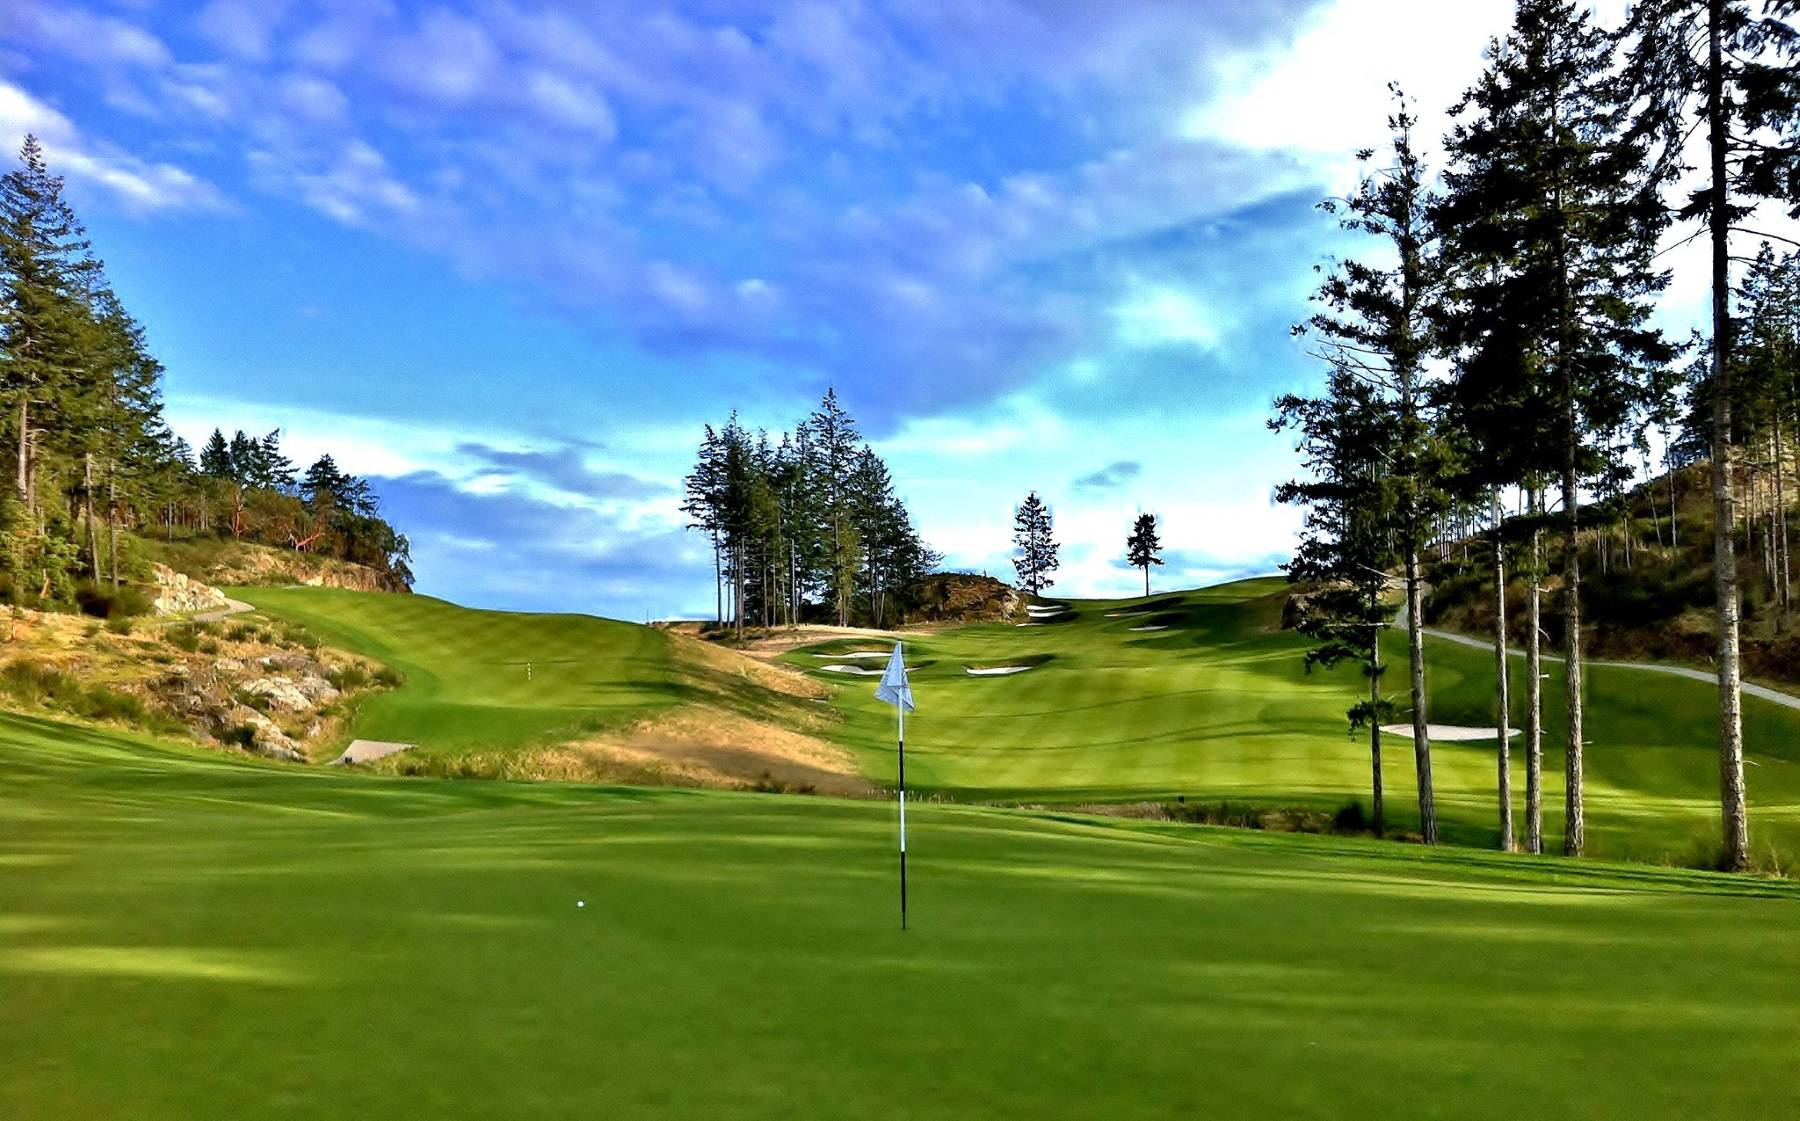 Westin-Bear-Mountain-Golf-Resort-Mountain-Course-2